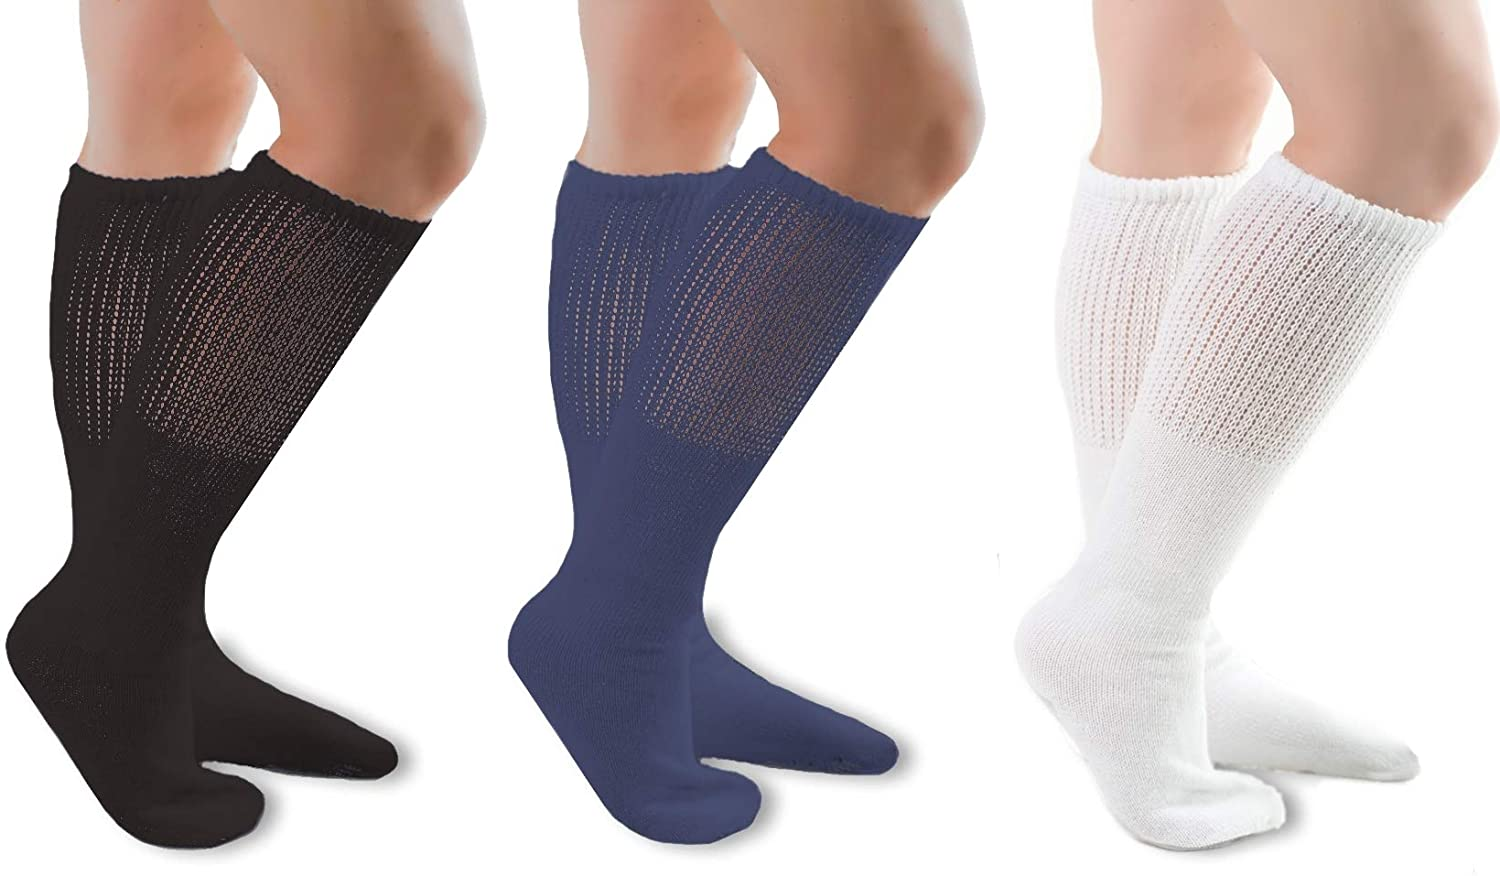 Comfort Finds Diabetic SwellSox - Breathable Cotton Socks - Loose Fitting Comfortable Sock – Non Binding Top Design – Improve Foot Circulation - Black, Navy, White - 36 Pairs